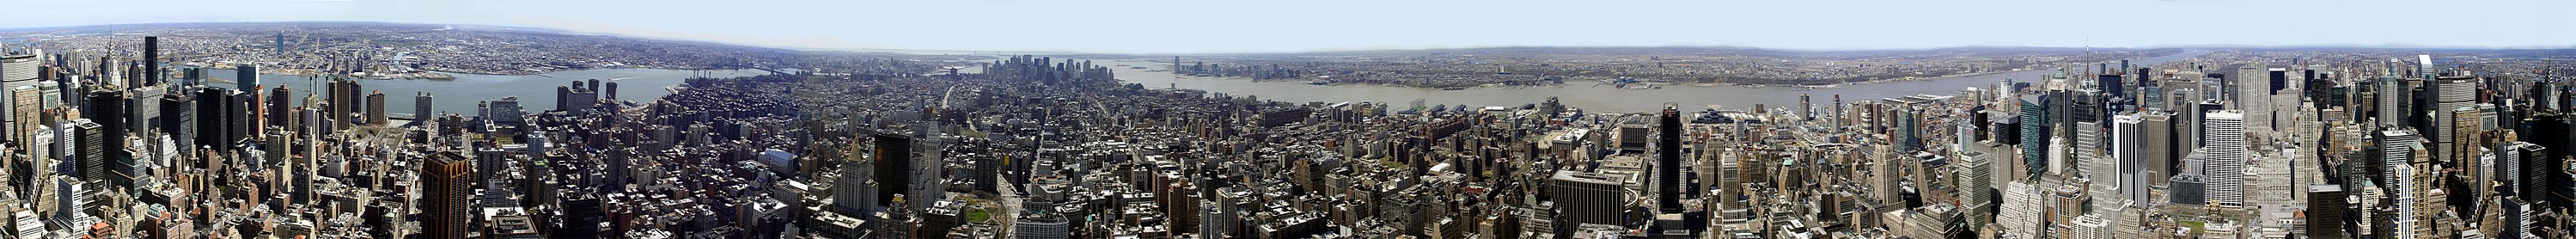 360°-Panoramo, Manhattan desupre de Empire State Building